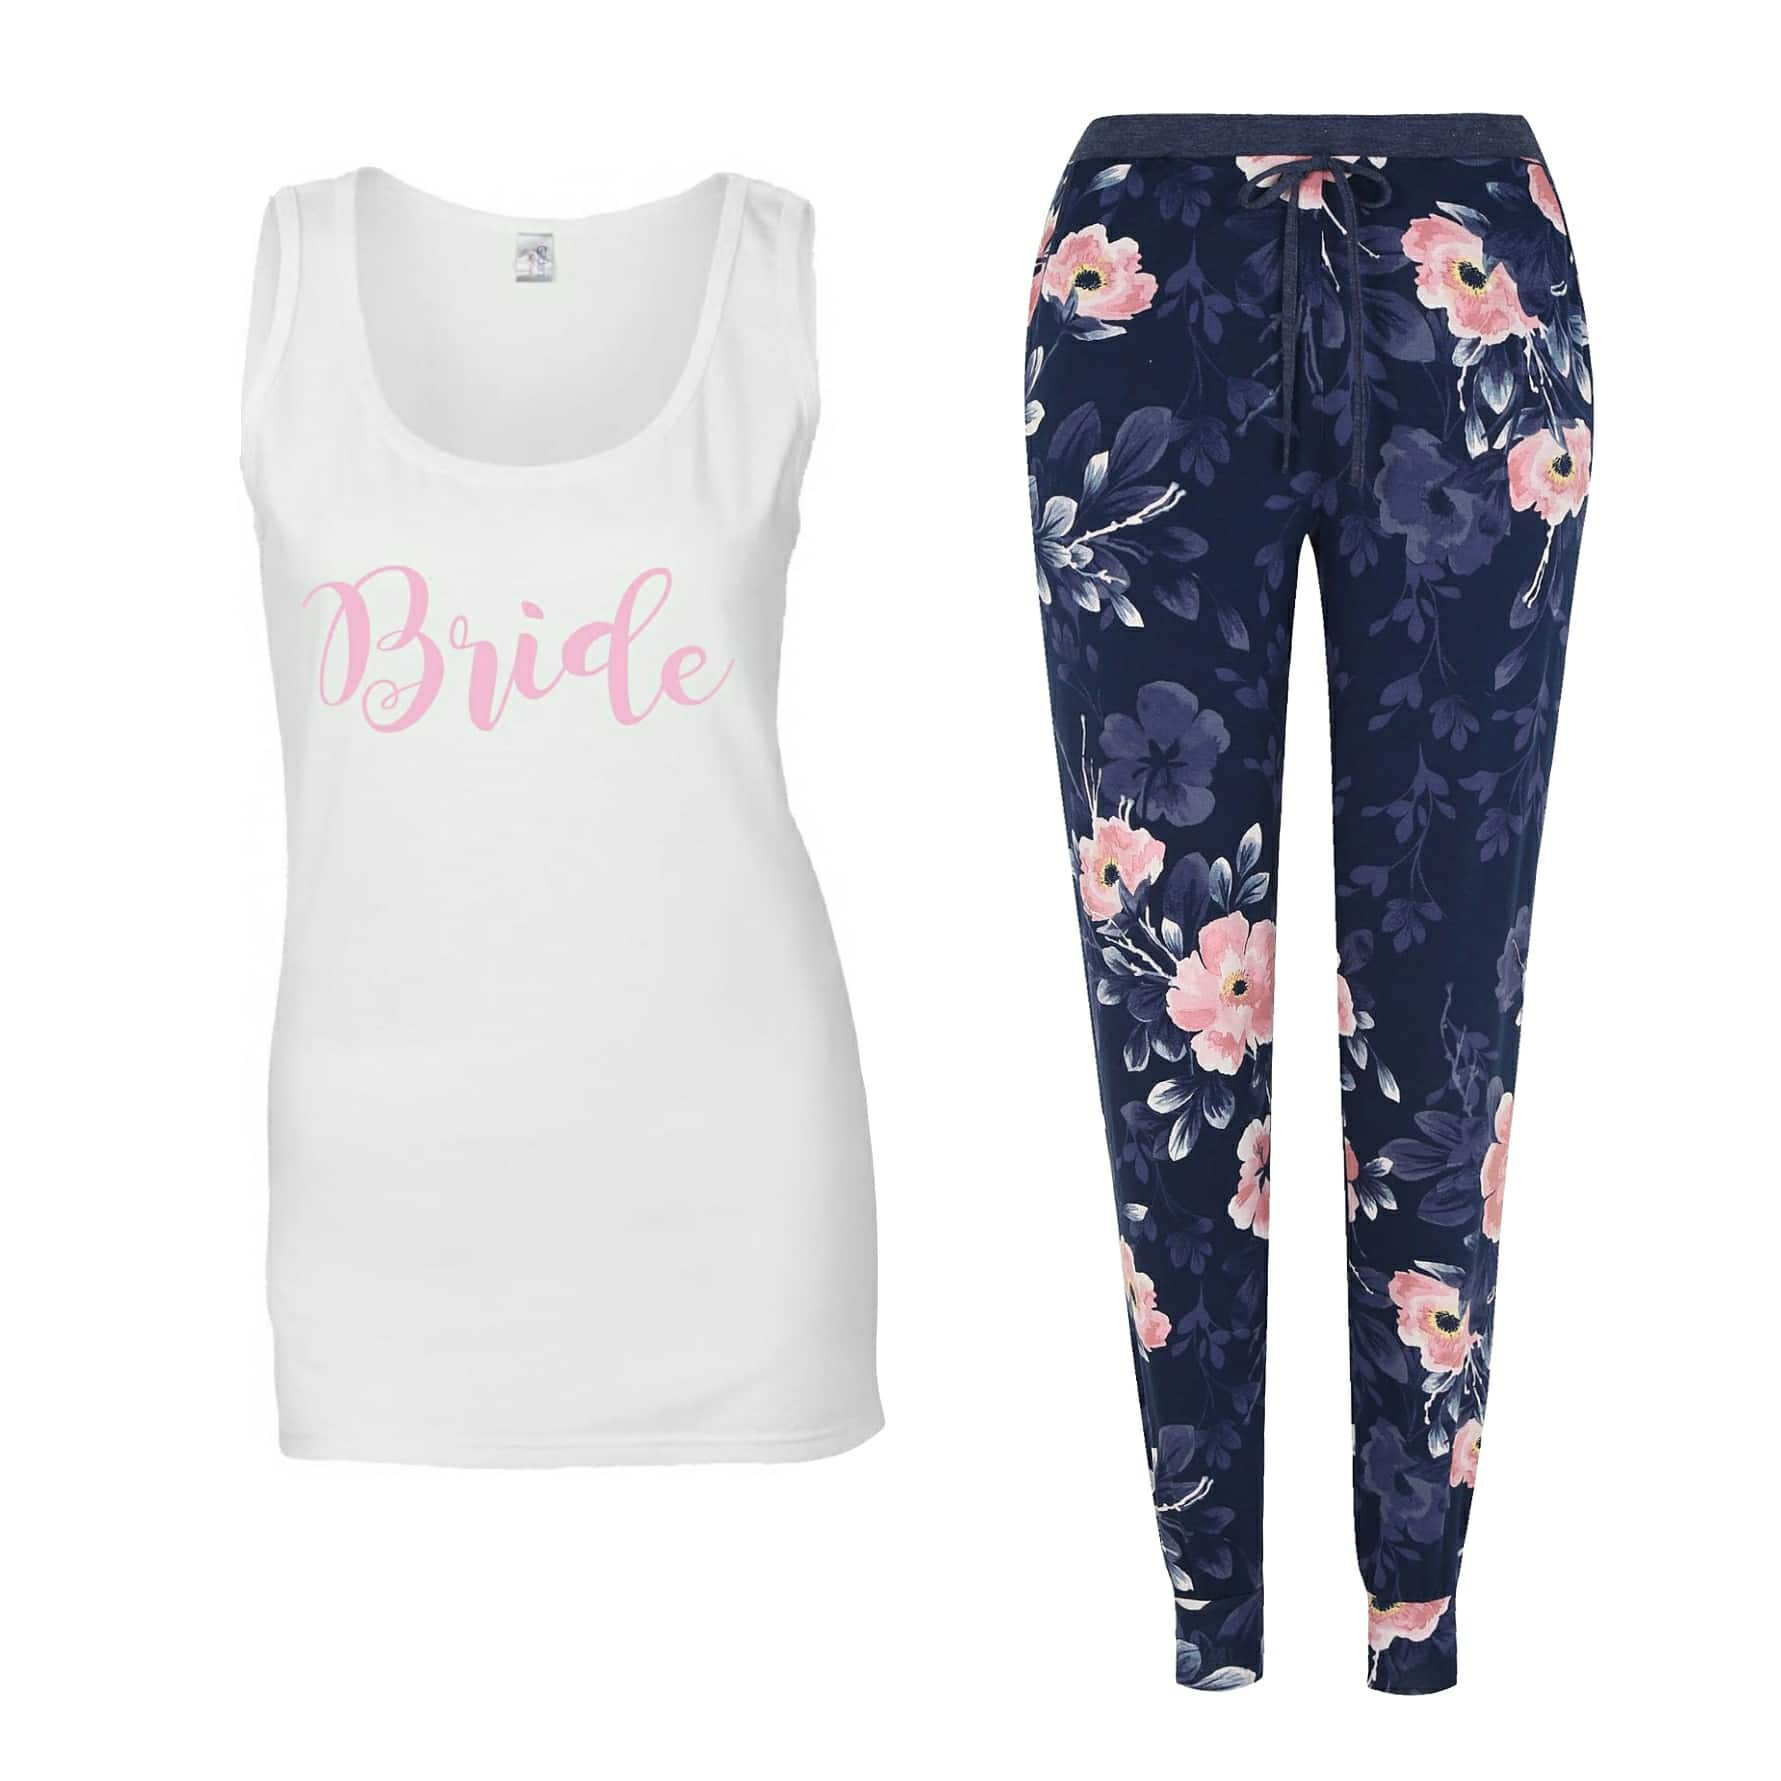 Bride to be floral pjs